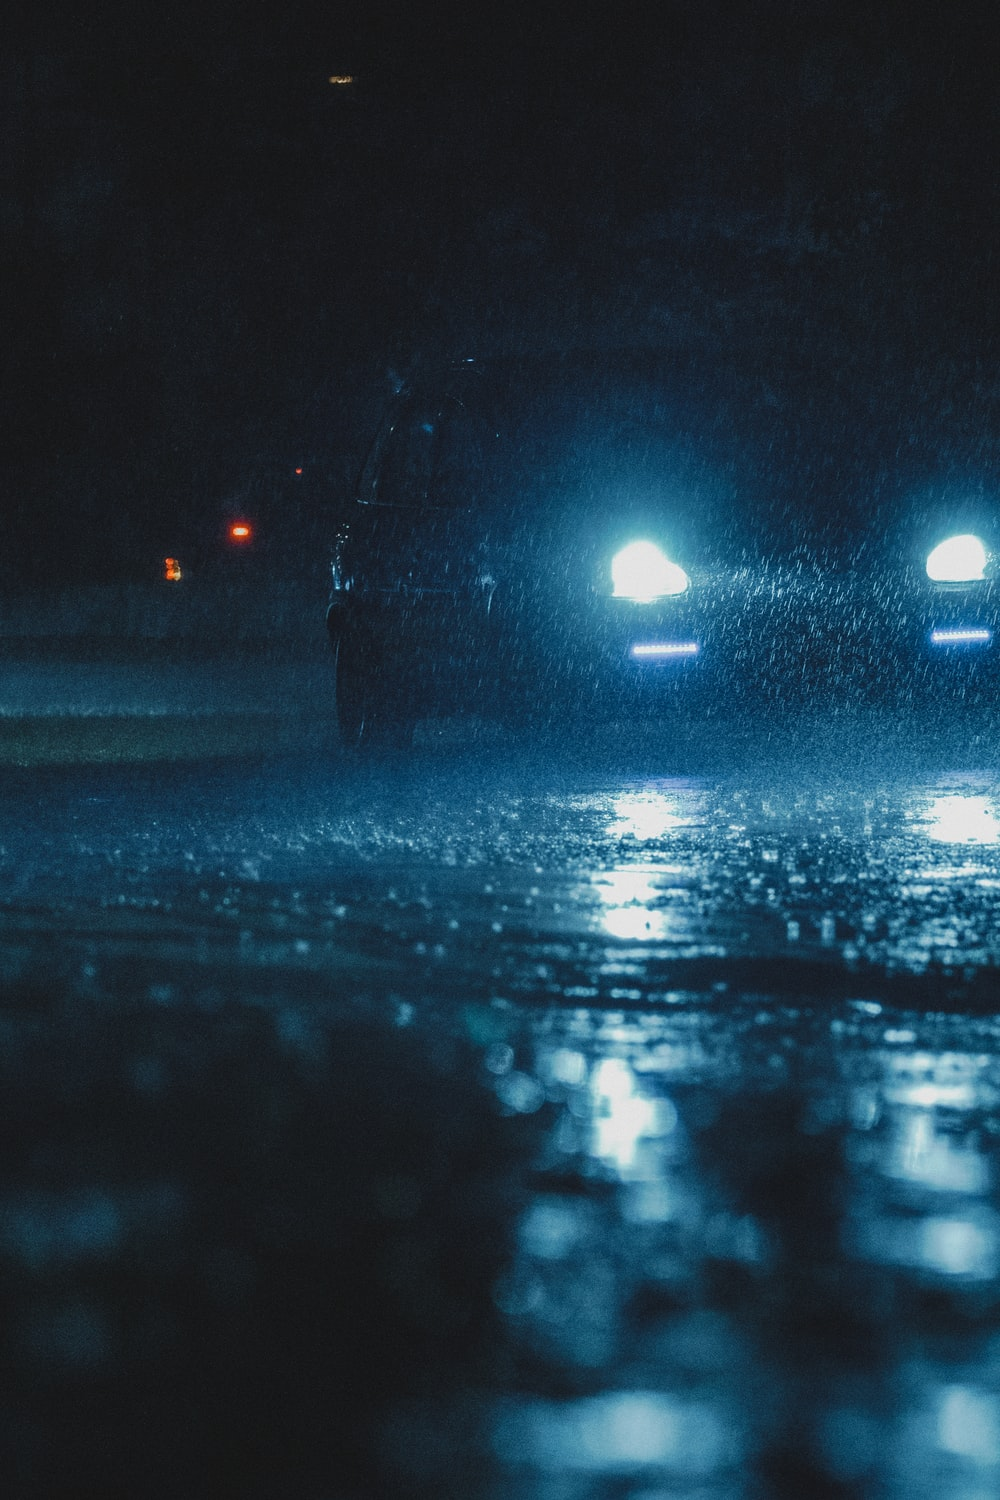 vehicle with headlight turned on running on wet road during nighttime